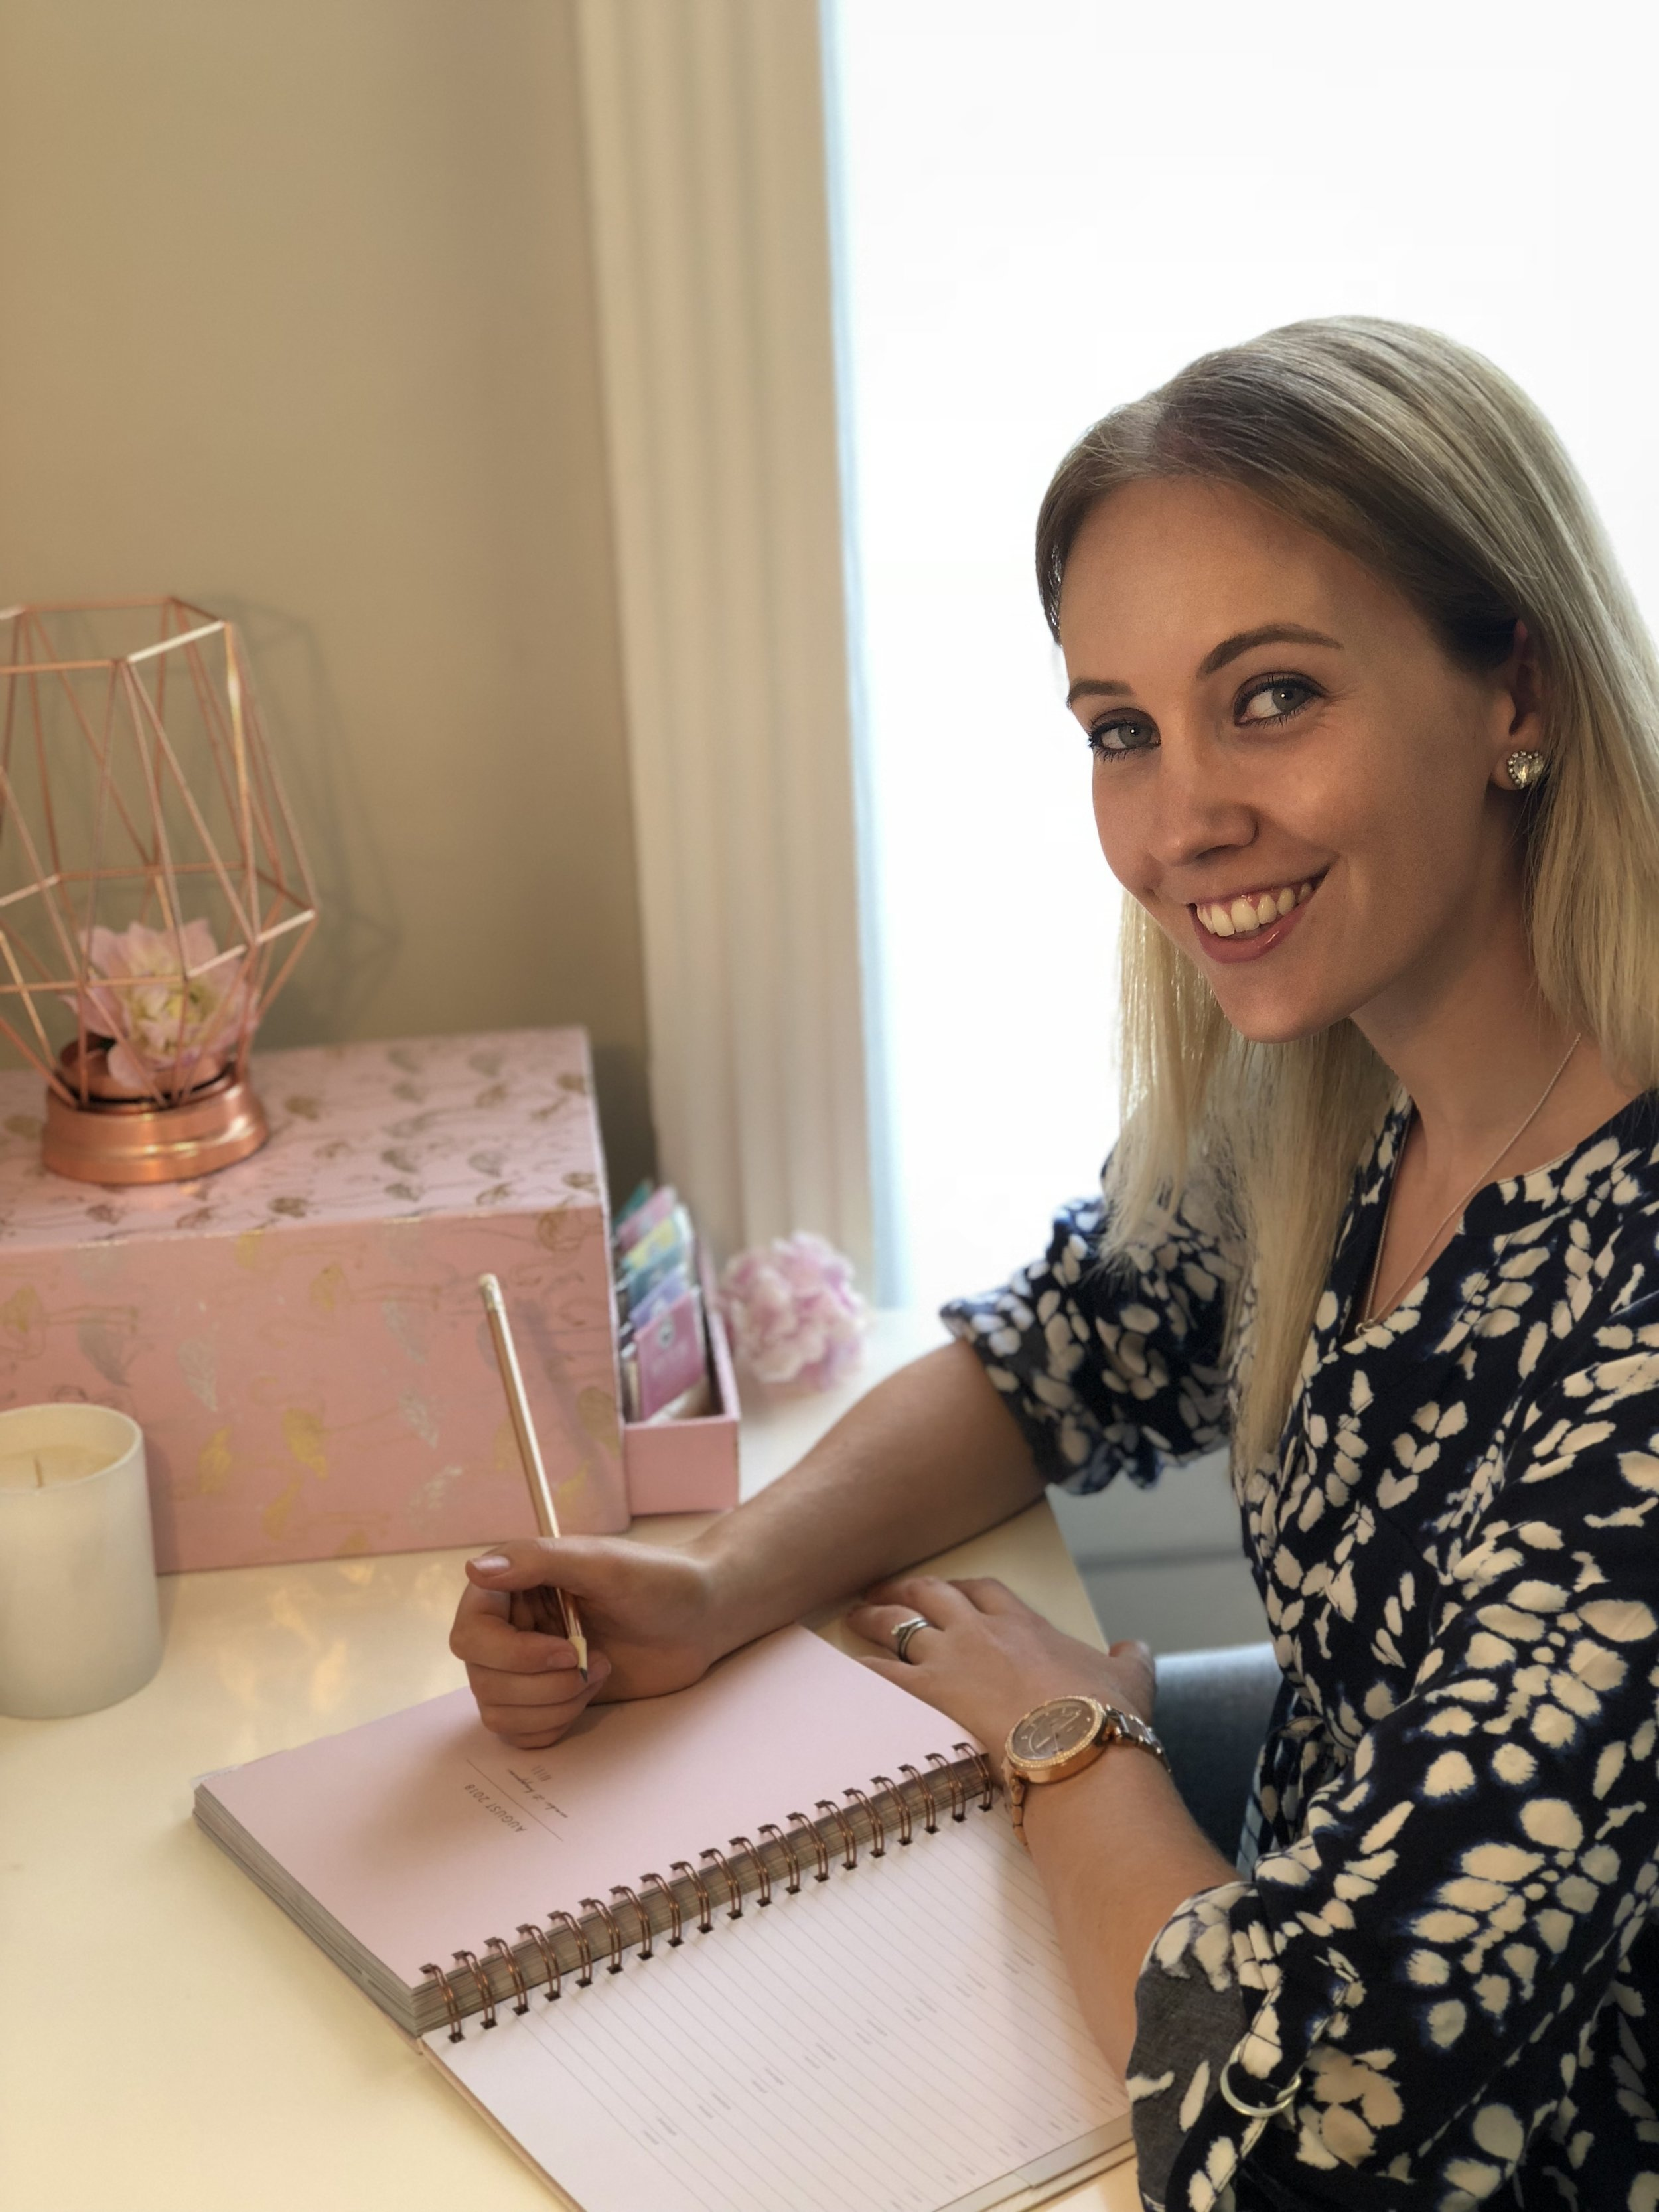 Hello I'm Emma and I want to support and guide you on your well-being journey - For as long as I can remember I knew I wanted to do Beauty Therapy or work with children and in the past few years I believe I have found my area to do both. I have been trained since I was 17 in Beauty Therapy and set out to make my mark on the industry, working in some of the top Spa's in the country. As much I loved these experiences I always felt frustrated that we had to stick to a set routine for every client and couldn't tailor their experience more. I then began teaching Beauty Therapy at a secondary school which was certainly eventful, the kids were spirited and every day was a learning curve for both them and me. The memorable day one of the girls waxed another girls' eyebrow off will haunt me forever!! But in the background of my teaching life I kept a sad secret that me and my husband had fertility issues and I wasn't sure how I was going to have my one wish in life, becoming a mum. Fertility issues can be so isolating, lonely and can make you feel like you are ultimately broken. I soon learned that there weren't many options when it came to support and finding a community to share my struggles.We have undergone IVF treatment and in 2015 my precious miracle Freddie was born. I knew from the first IVF appointment and every injection and drug that I then wanted to help other women going through this experience and make them feel supported. Since then I have gone on to have further IVF treatment and we have now completed our family with our little girl Lola in 2017. Even now, thinking about the whole process still makes me teary and emotional, it was a rough ride and I'm so thankful for the support from my husband who had to endure me going through every emotion on a daily basis, and even helping inject me when I couldn't do it myself. The love and respect you gain for your partner during your fertility journey is unmeasurable, however it can also push people apart if they feel like they have no where else to turn to for help. So this is why I have become focused on fertility reflexology, pregnancy care and running a fertility support group so that you have the best possible help along your own journey.